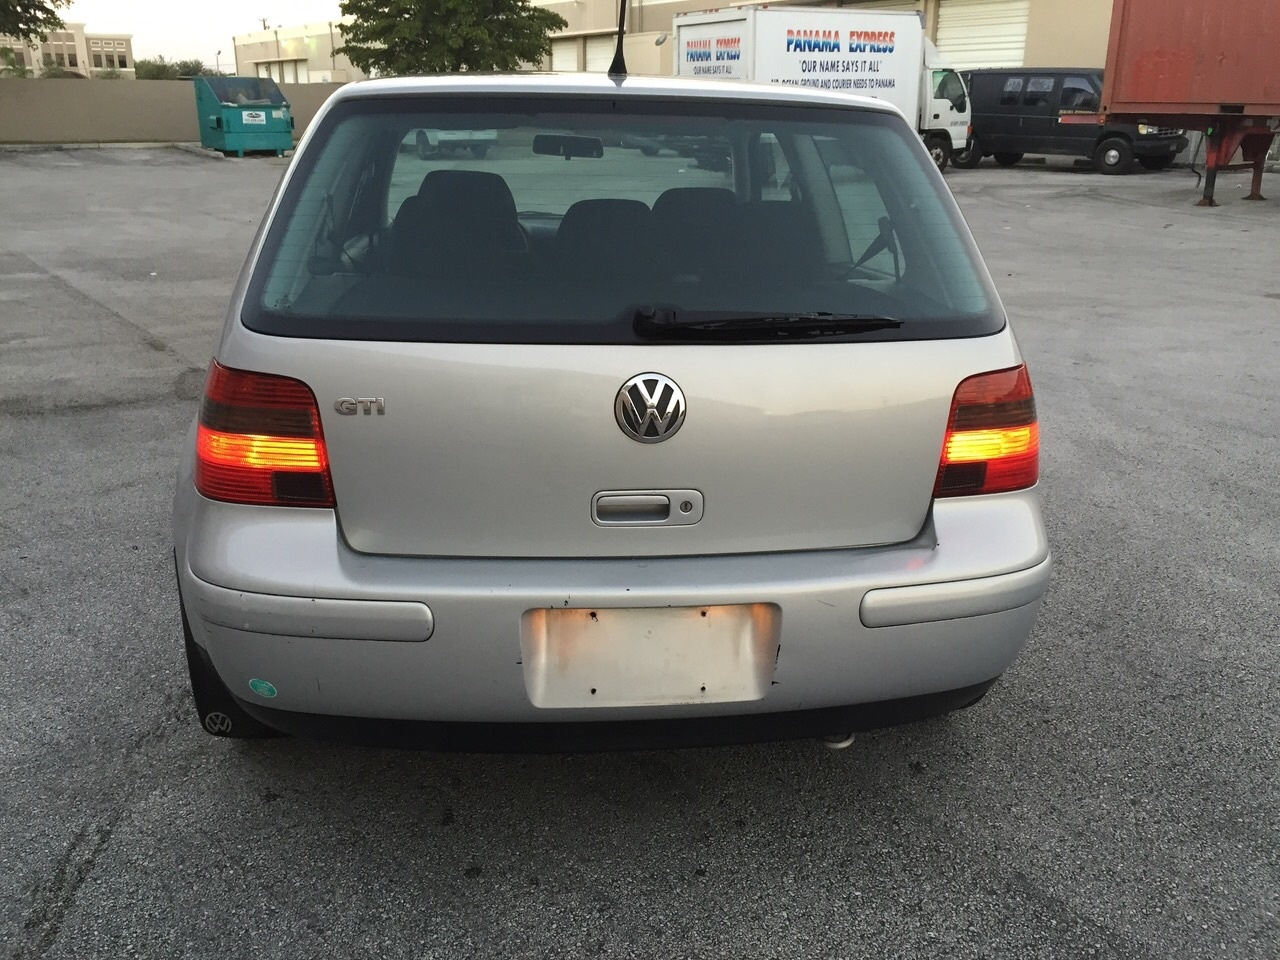 Picture of 2000 volkswagen gti exterior gallery_worthy